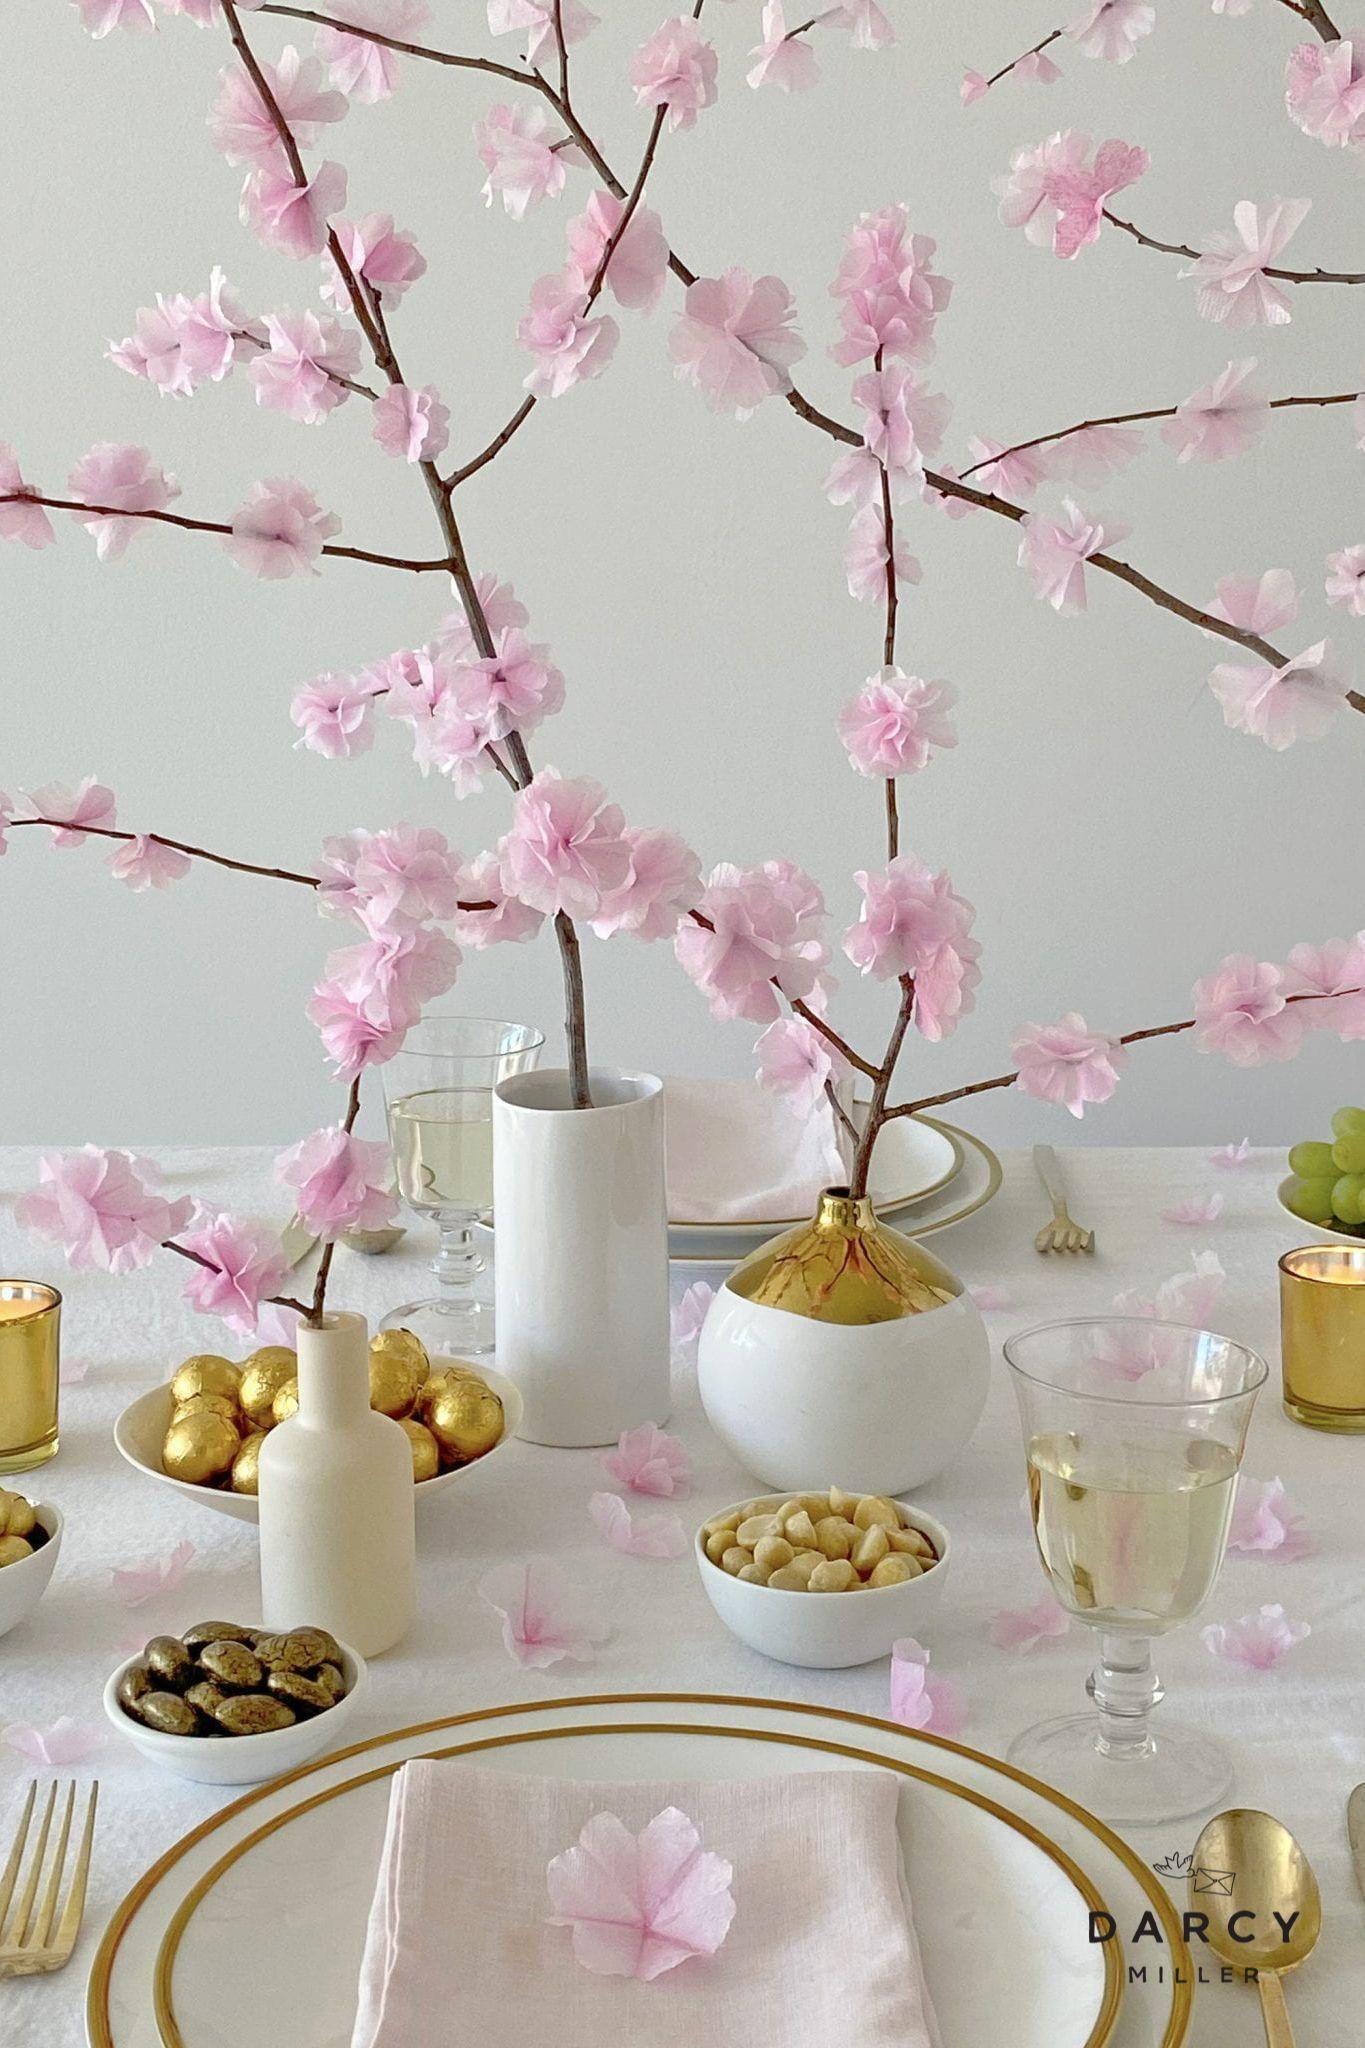 Paper Cherry Blossoms Darcy Miller Designs Cherry Blossom Cherry Blossom Festival Cherry Blossom Tree